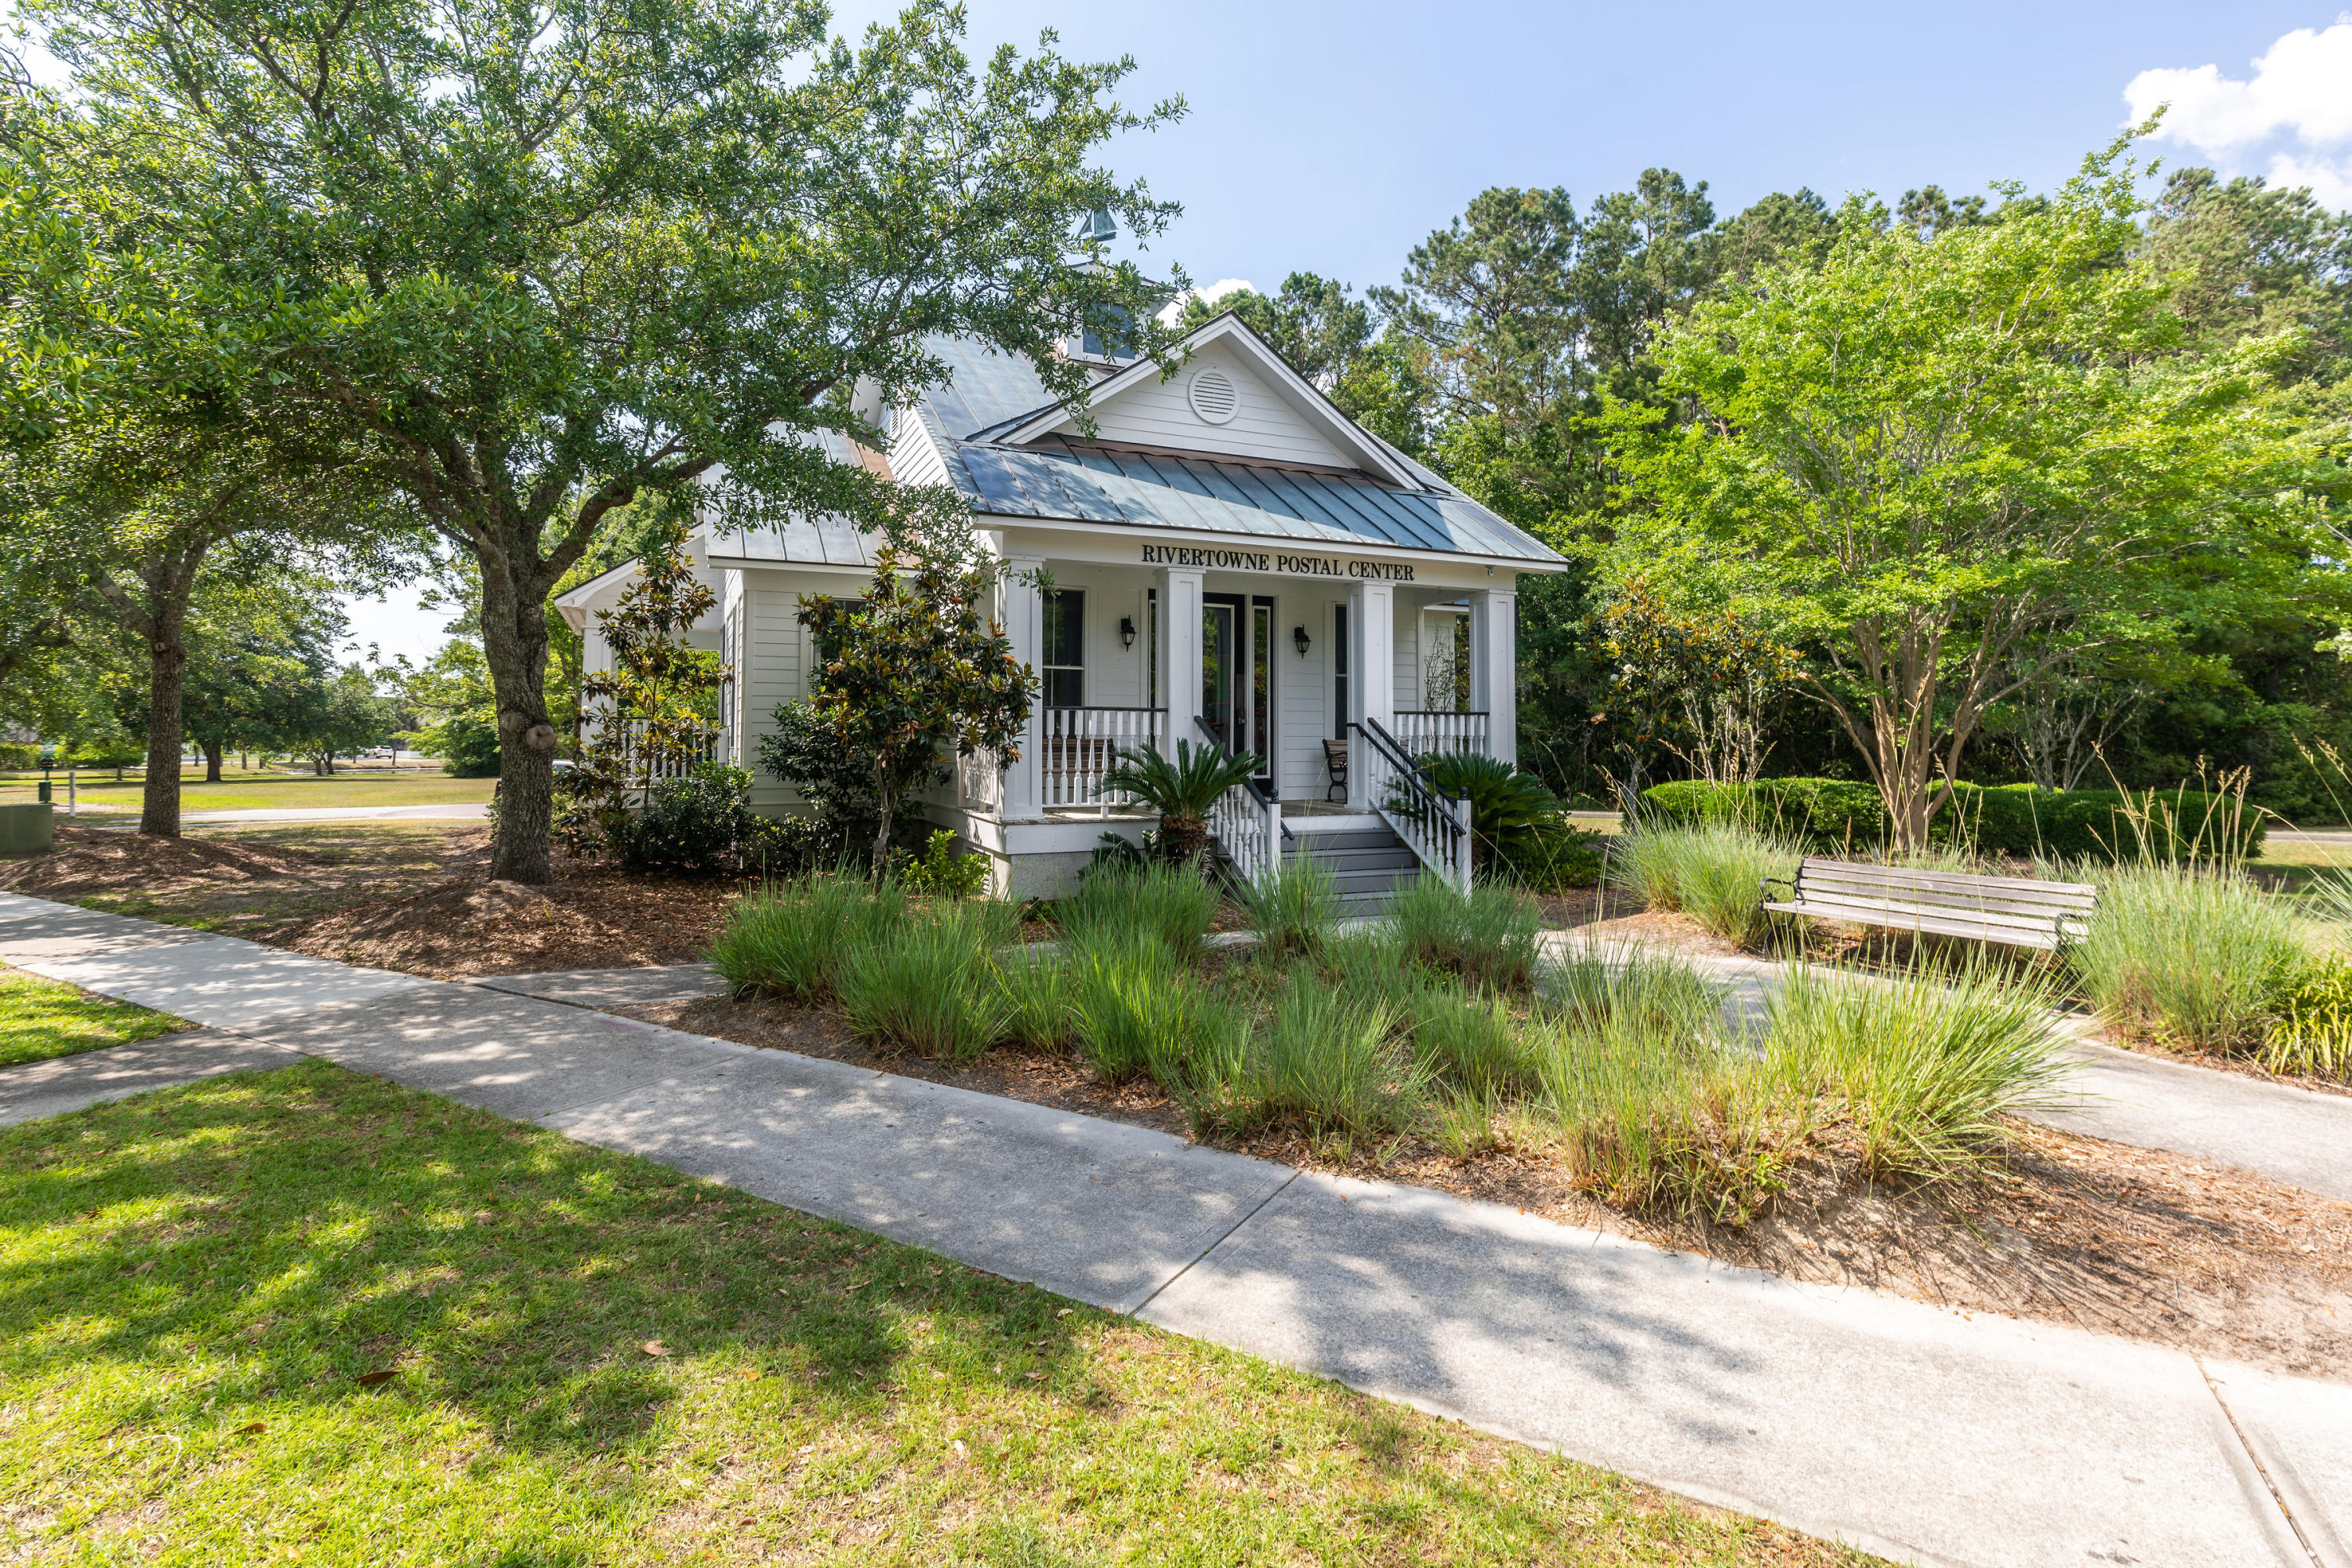 Rivertowne On The Wando Homes For Sale - 2765 Rivertowne, Mount Pleasant, SC - 35